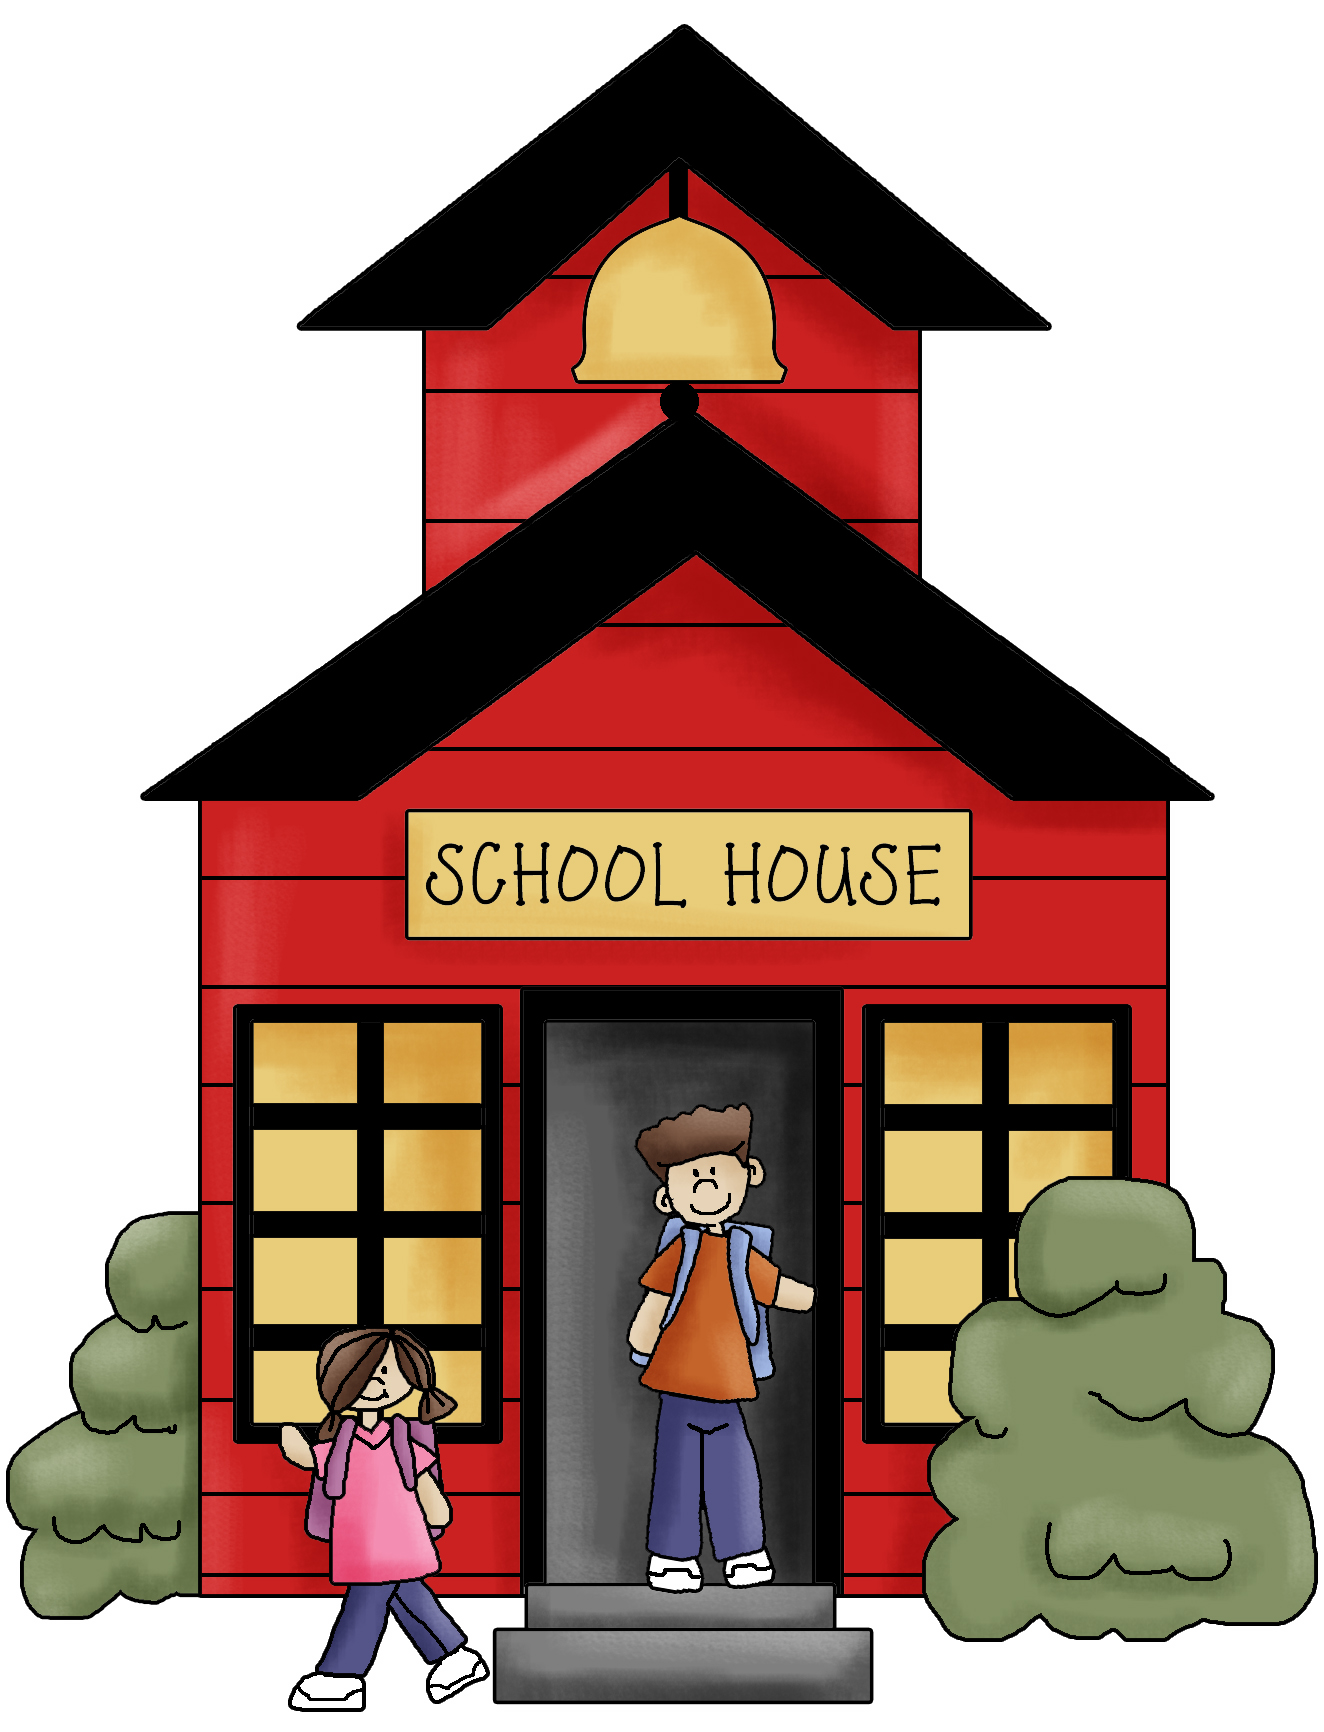 School house images free clipart 4